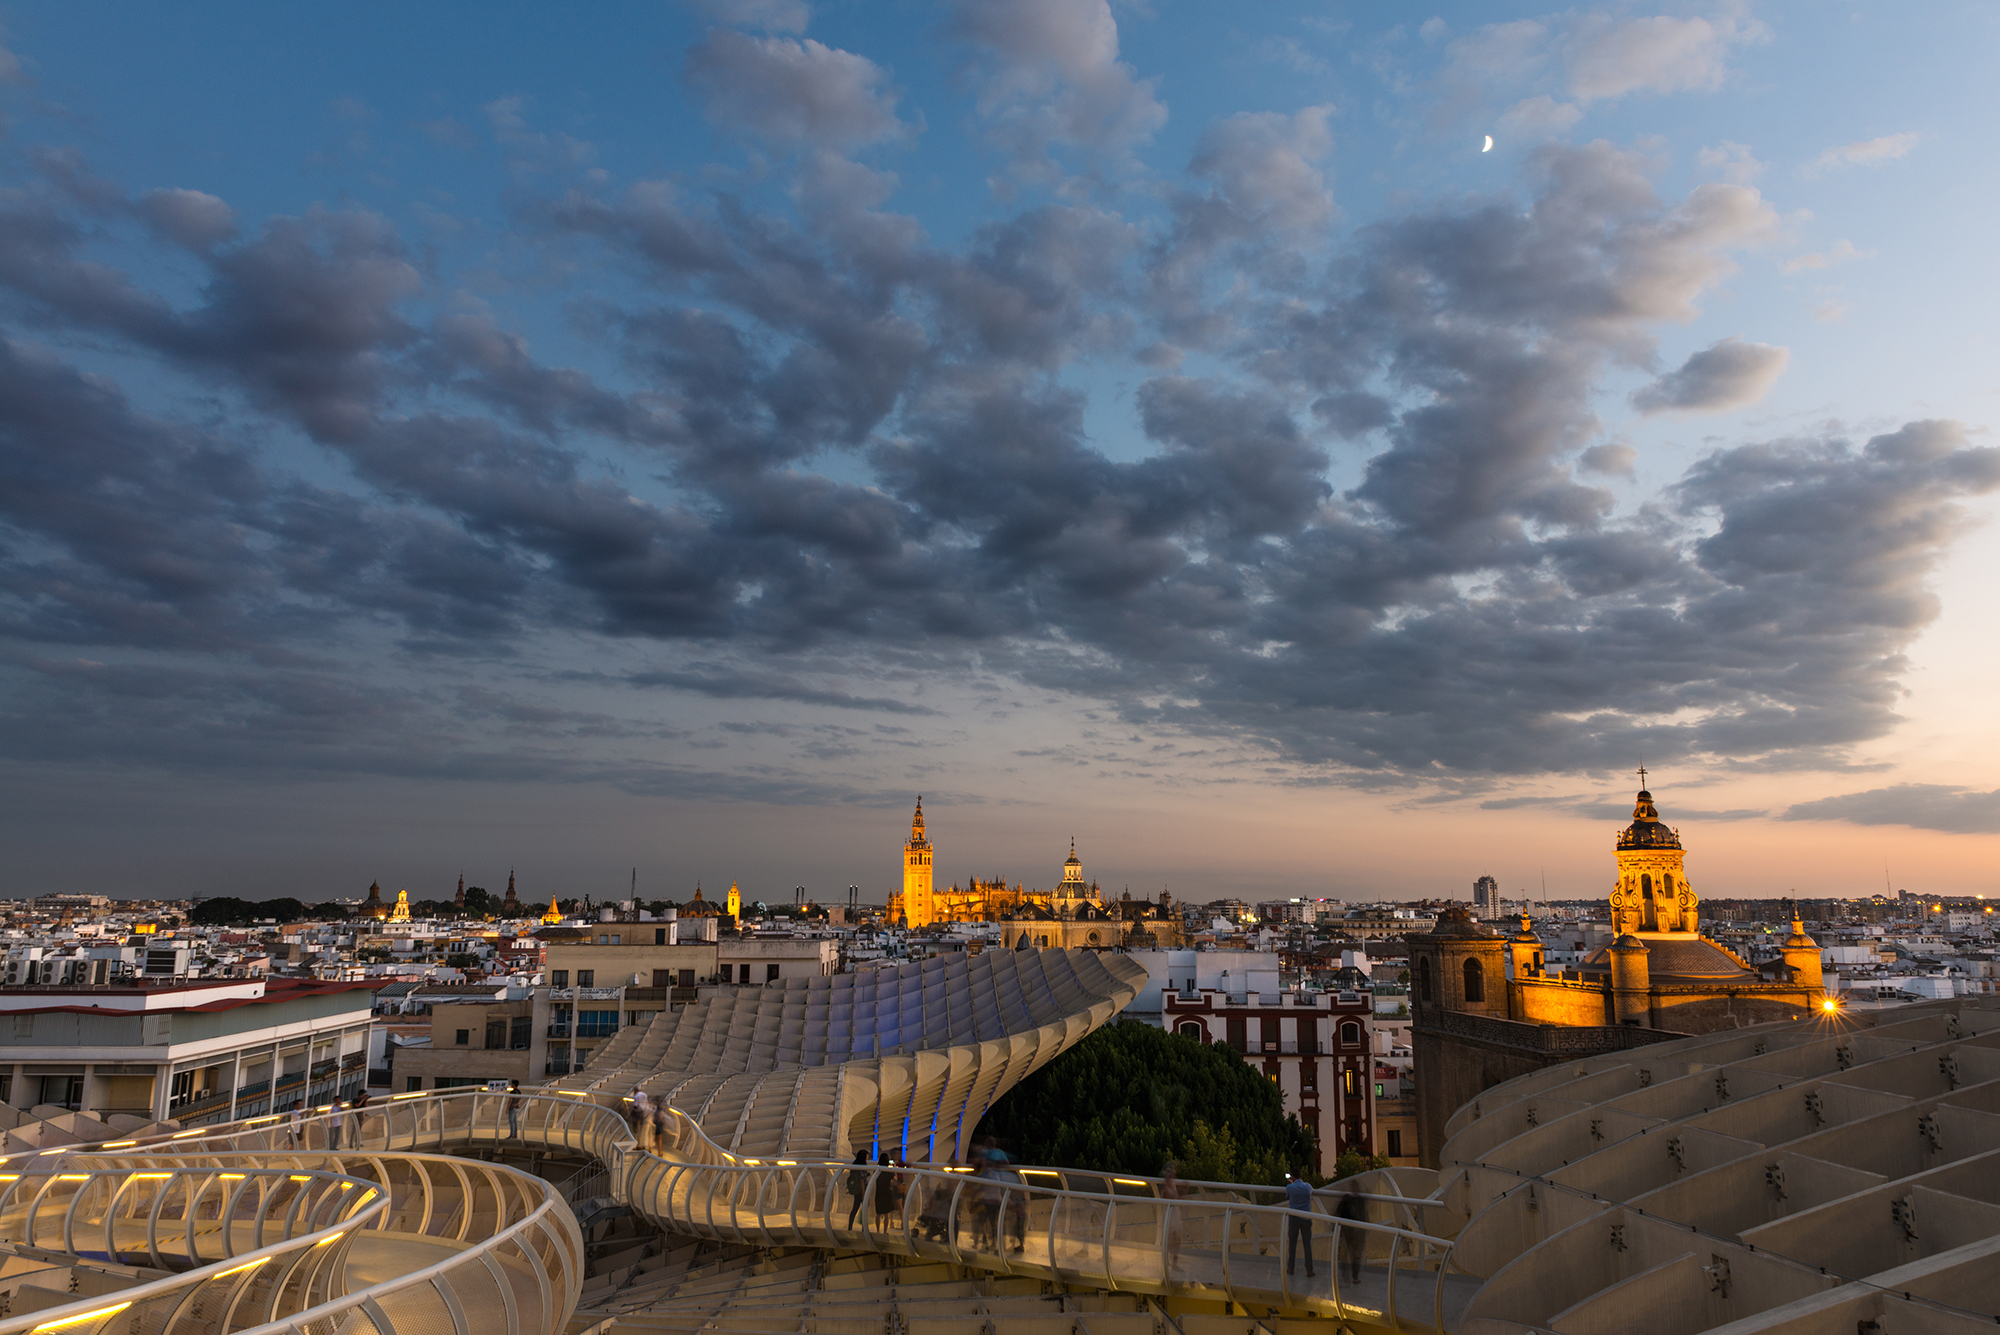 Seville cityscape at dusk from the Metropol Parasol